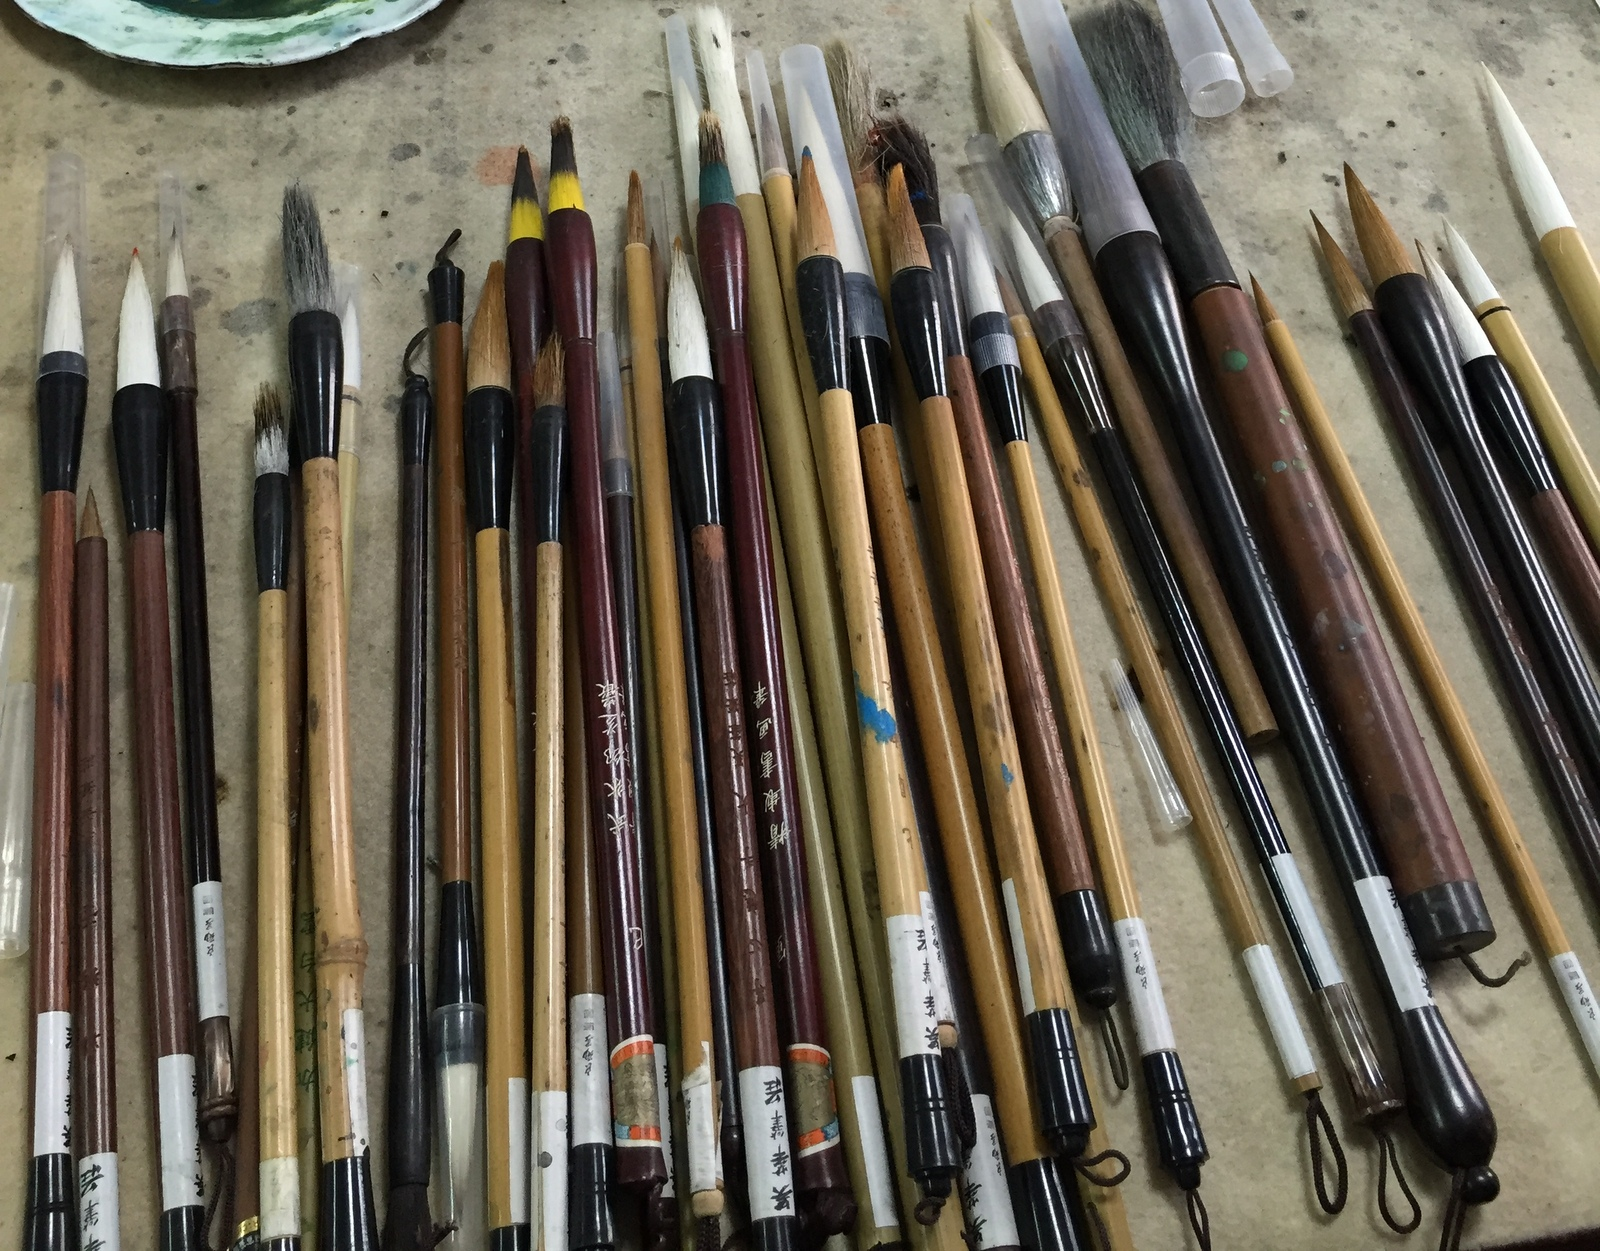 How to Use a Chinese Calligraphy Brush How to Use a Chinese Calligraphy Brush new photo